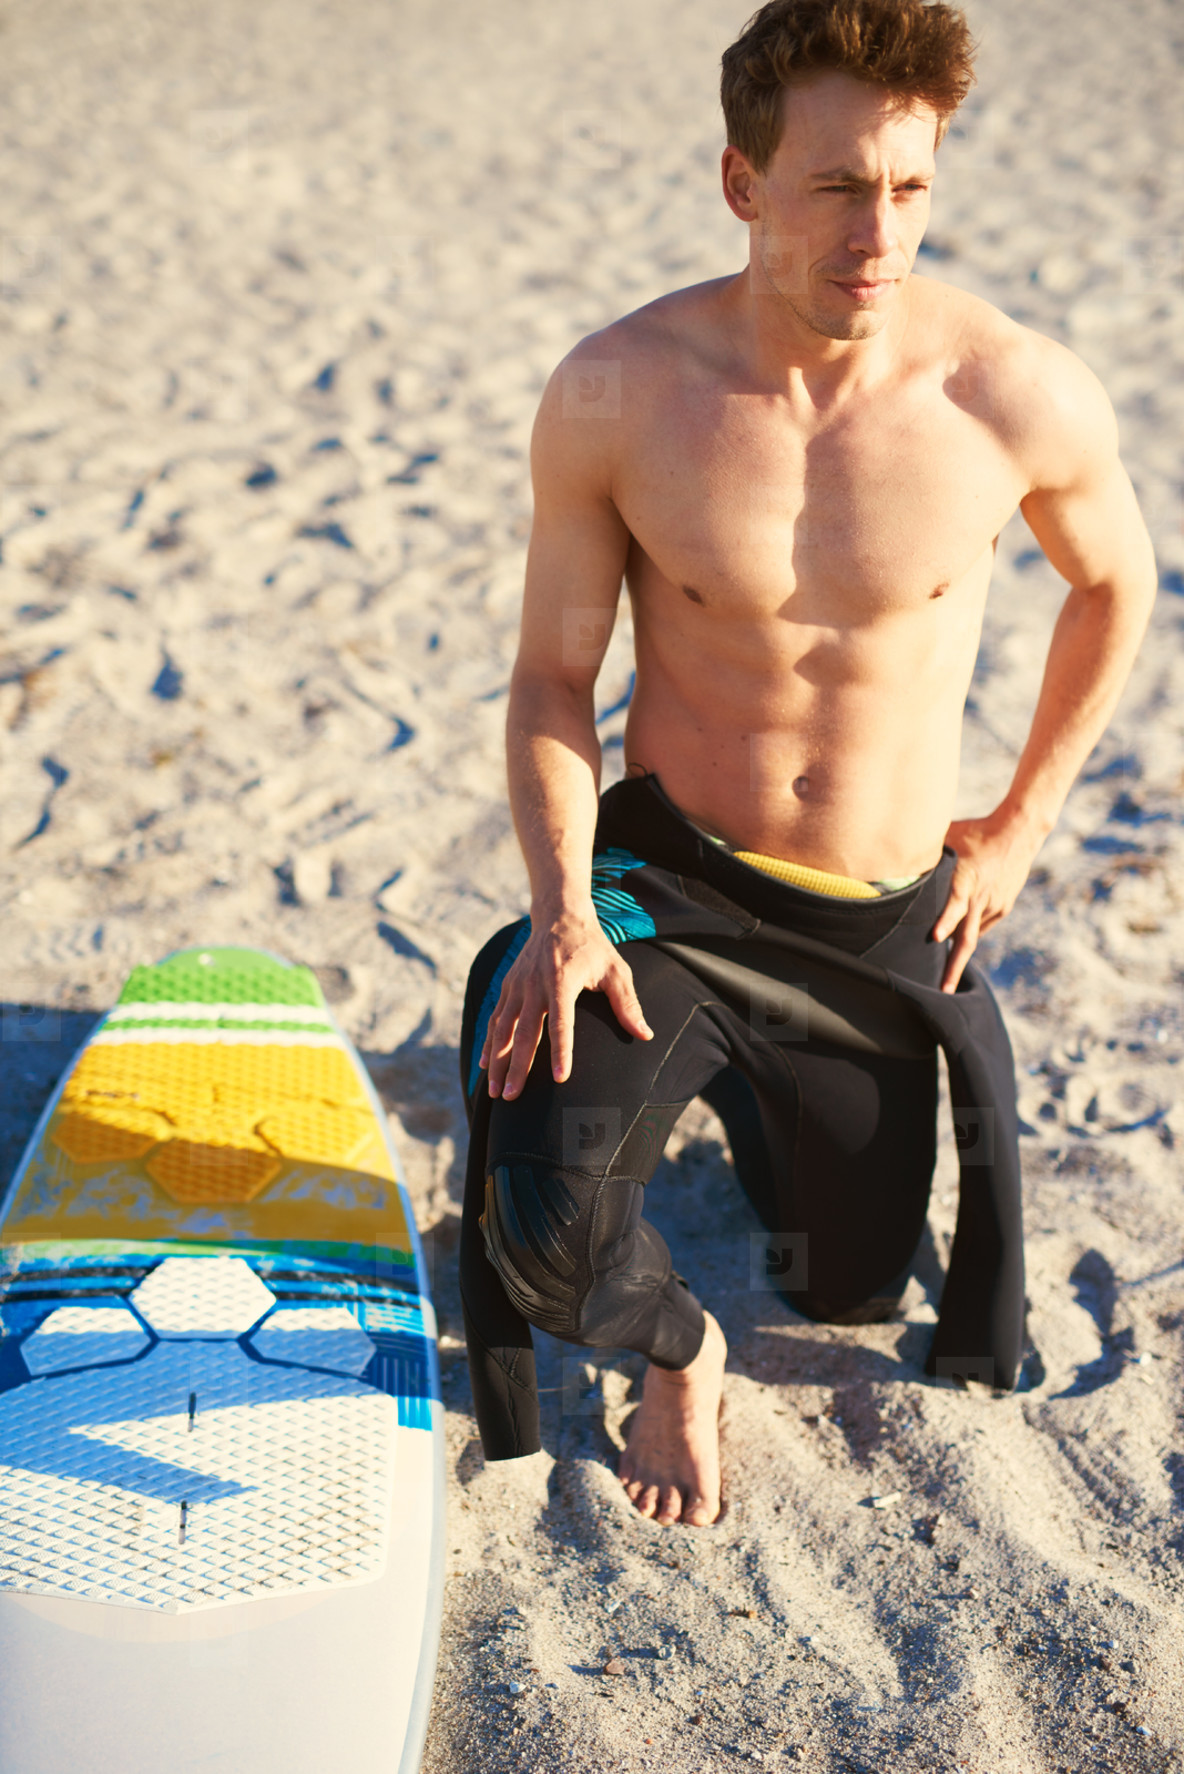 Handsome muscular surfer kneeling with his board